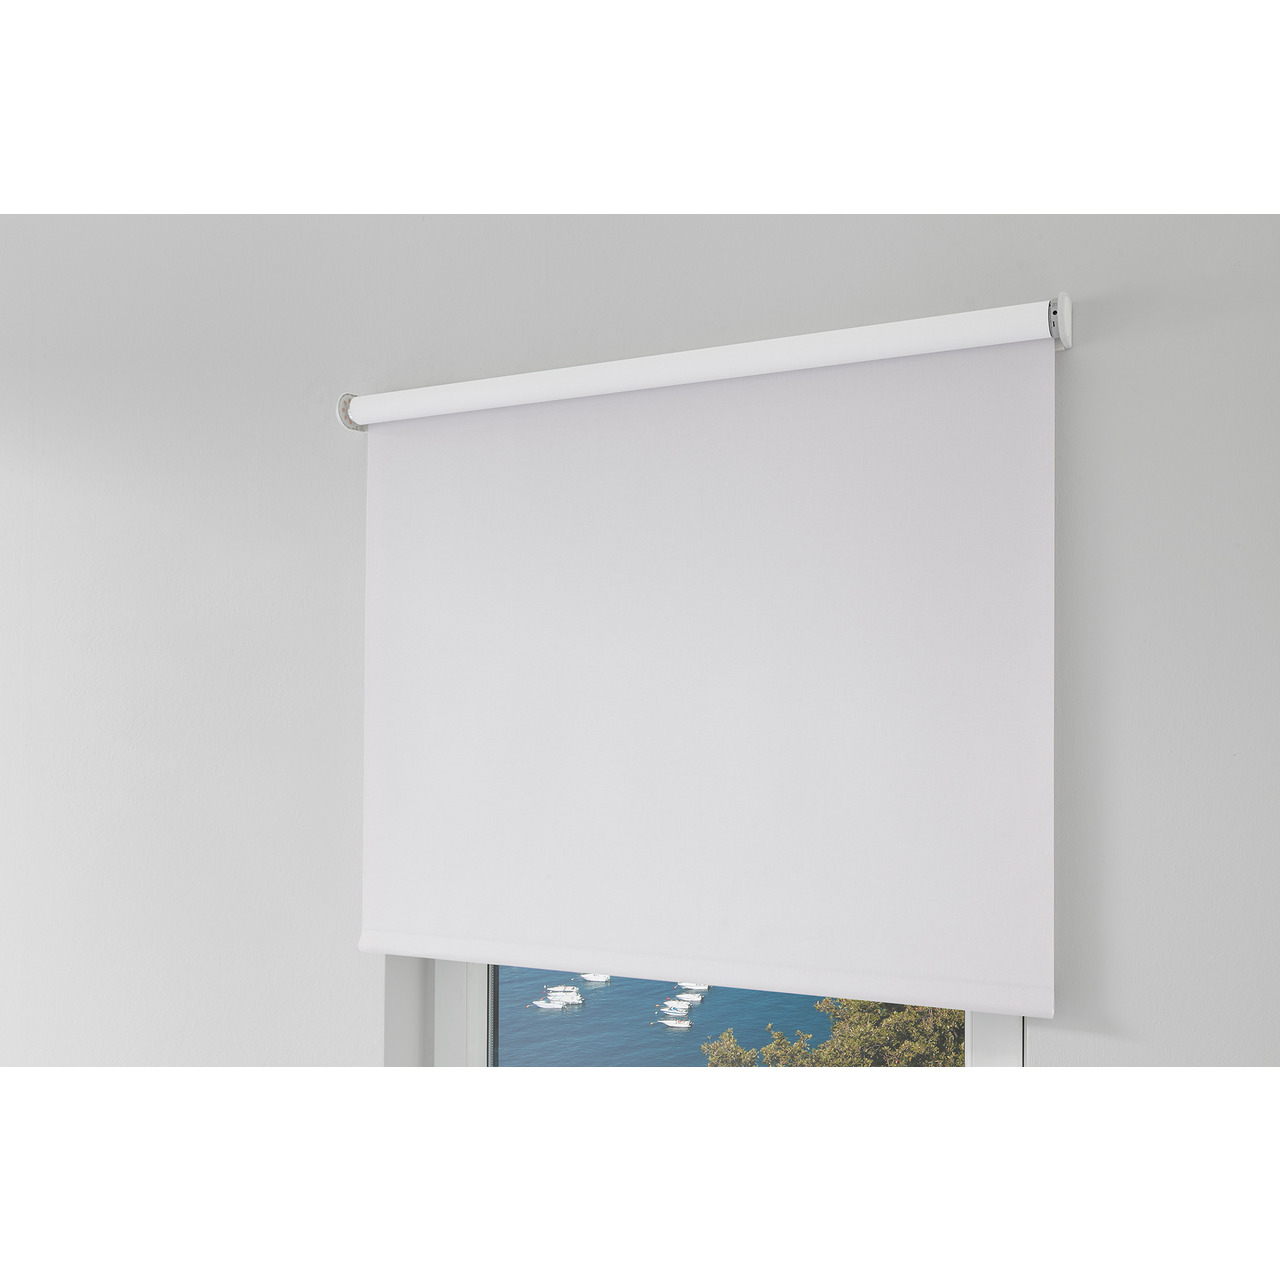 Erfal Smartcontrol Rollo by Homematic IP- 160 x 230 cm (B x H)- blickdicht abdunkelnd weiss